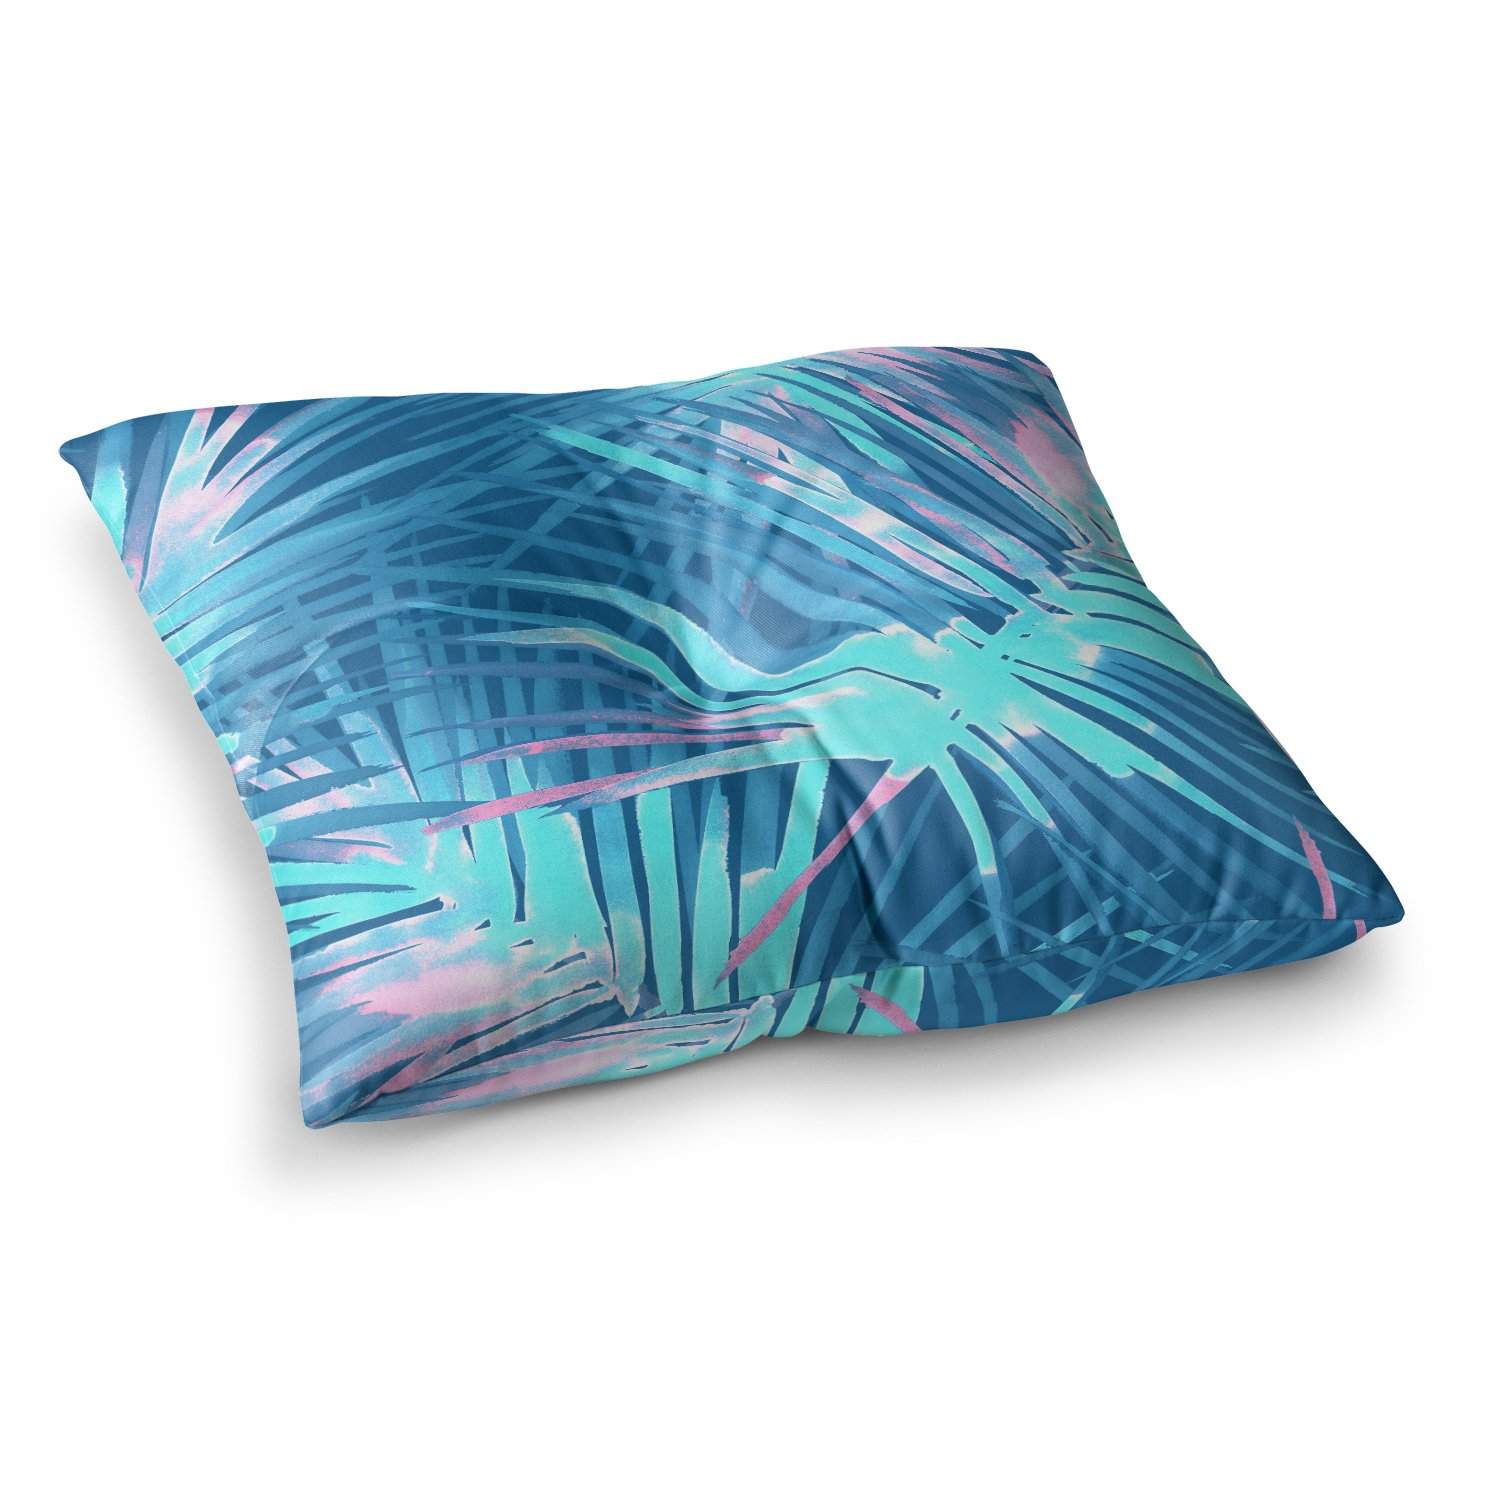 Kess InHouse Danii Pollehn Neon Tropical Blue Pink Illustration 23 x 23 Square Floor Pillow